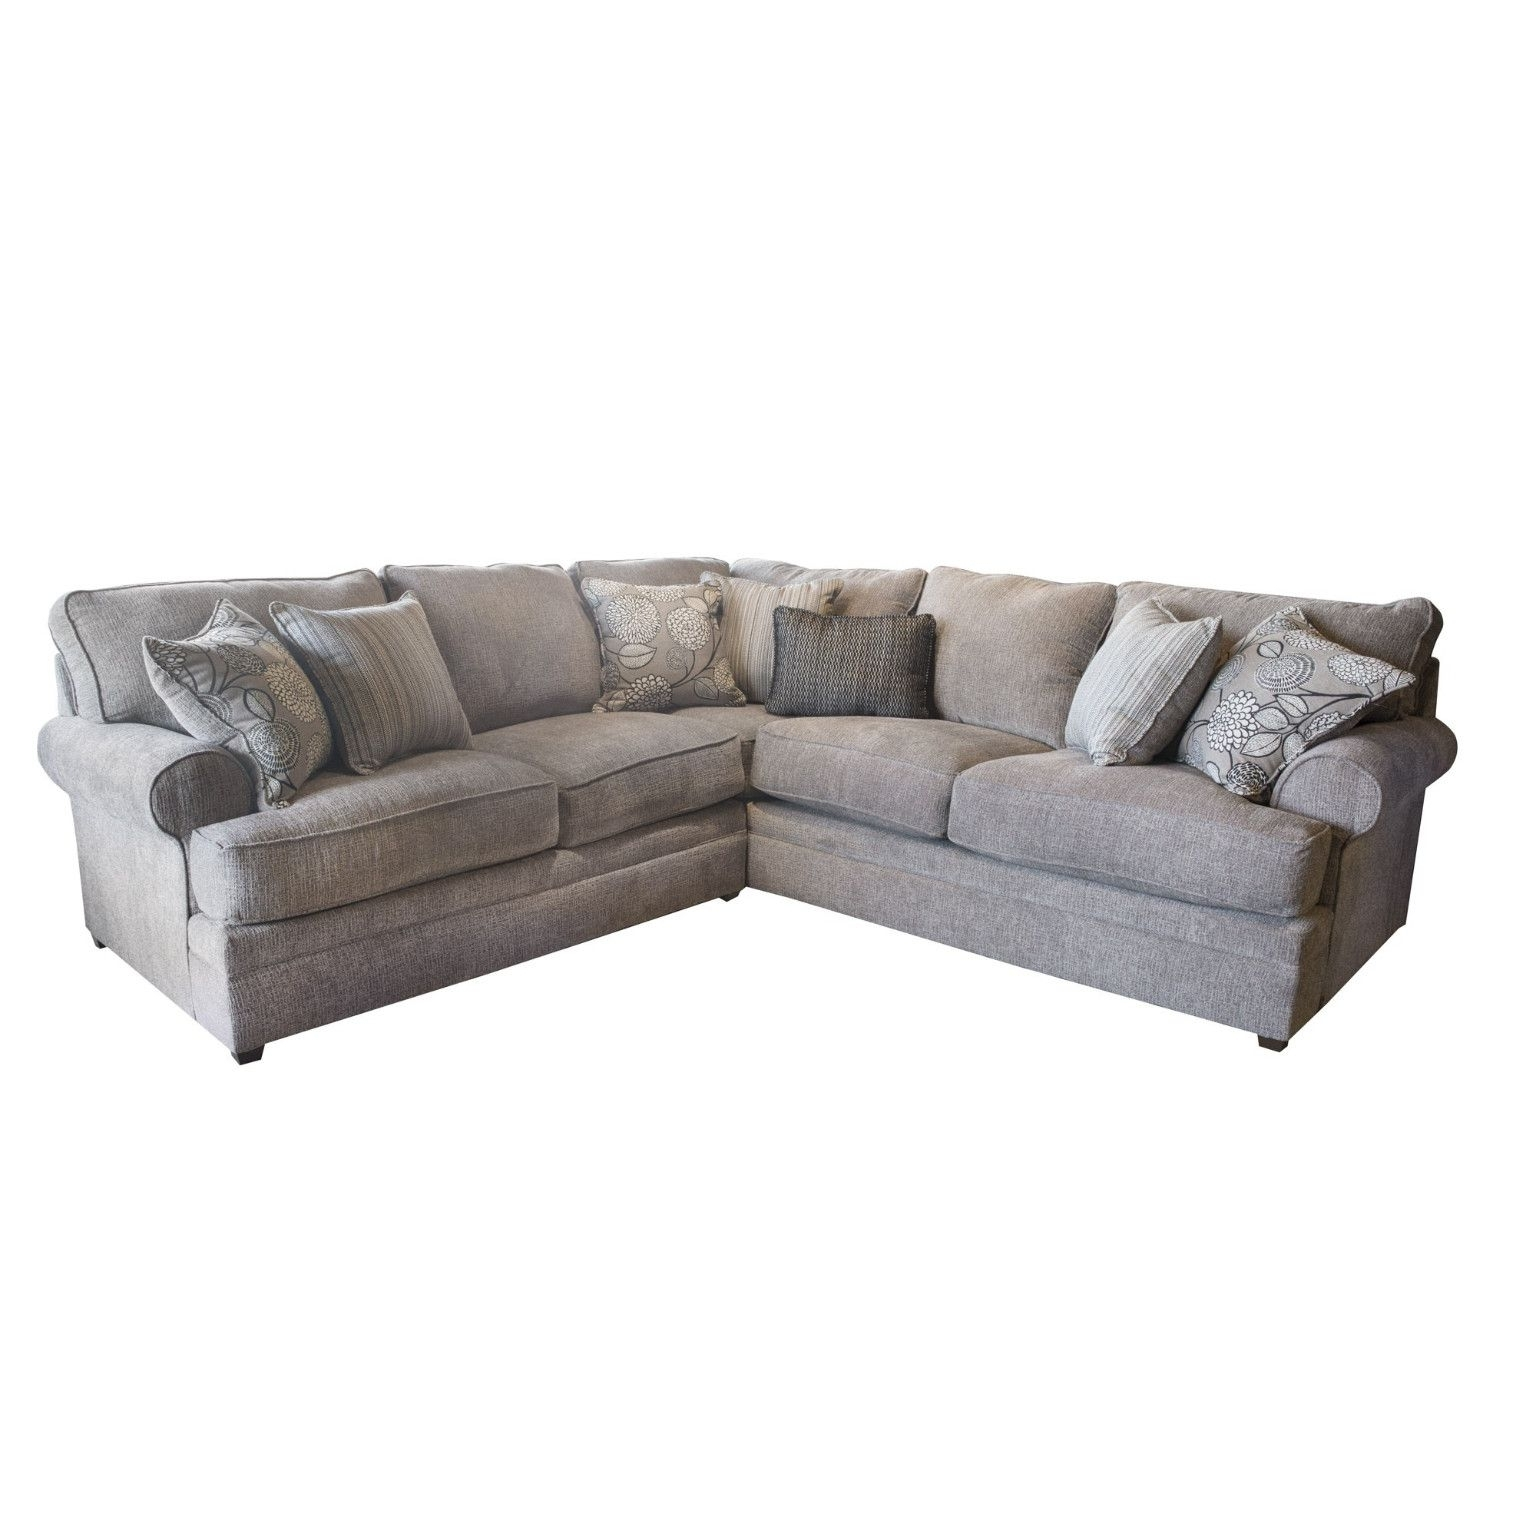 Fashionable Simmons Chaise Sofas With Macey Pewter 2 Piece Sectional Beauty Restsimmons $ (View 14 of 20)